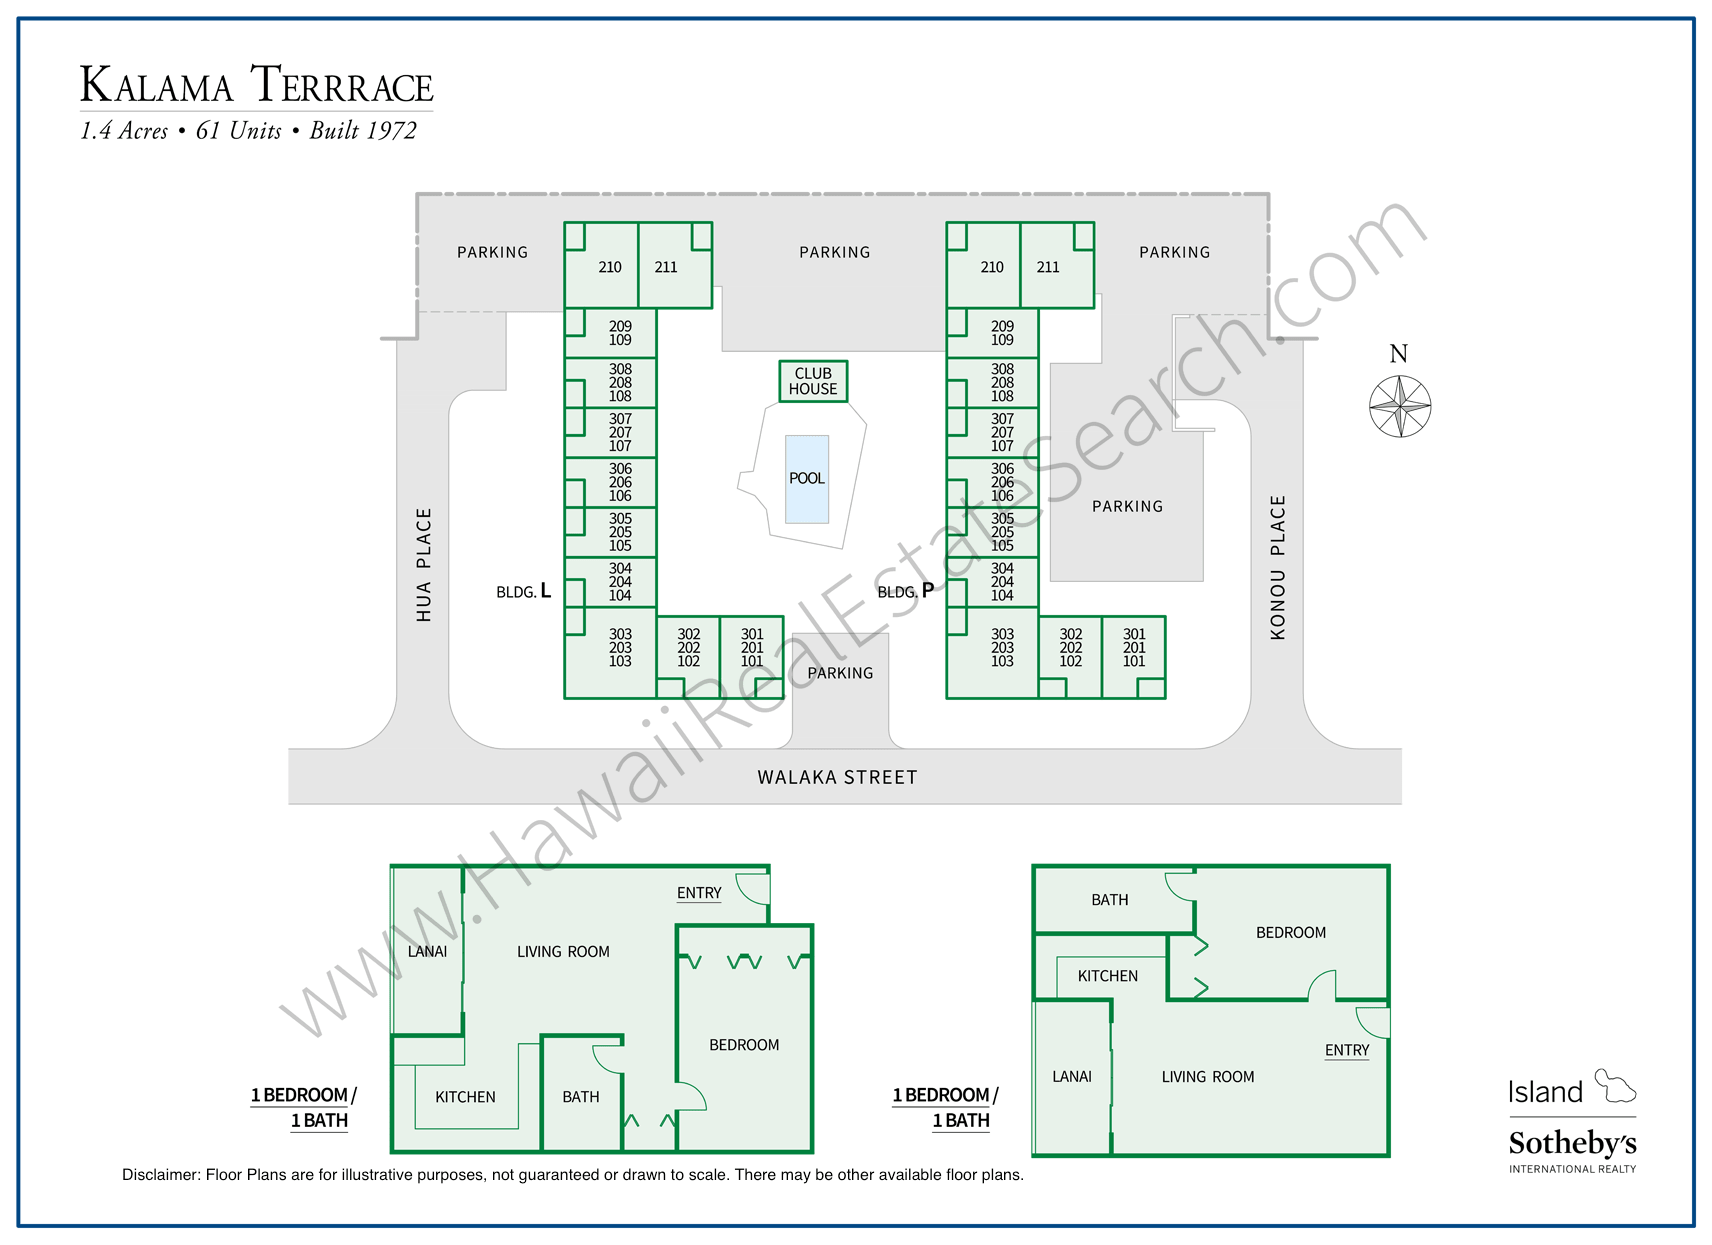 Kalama Terrace Map and Floor Plans